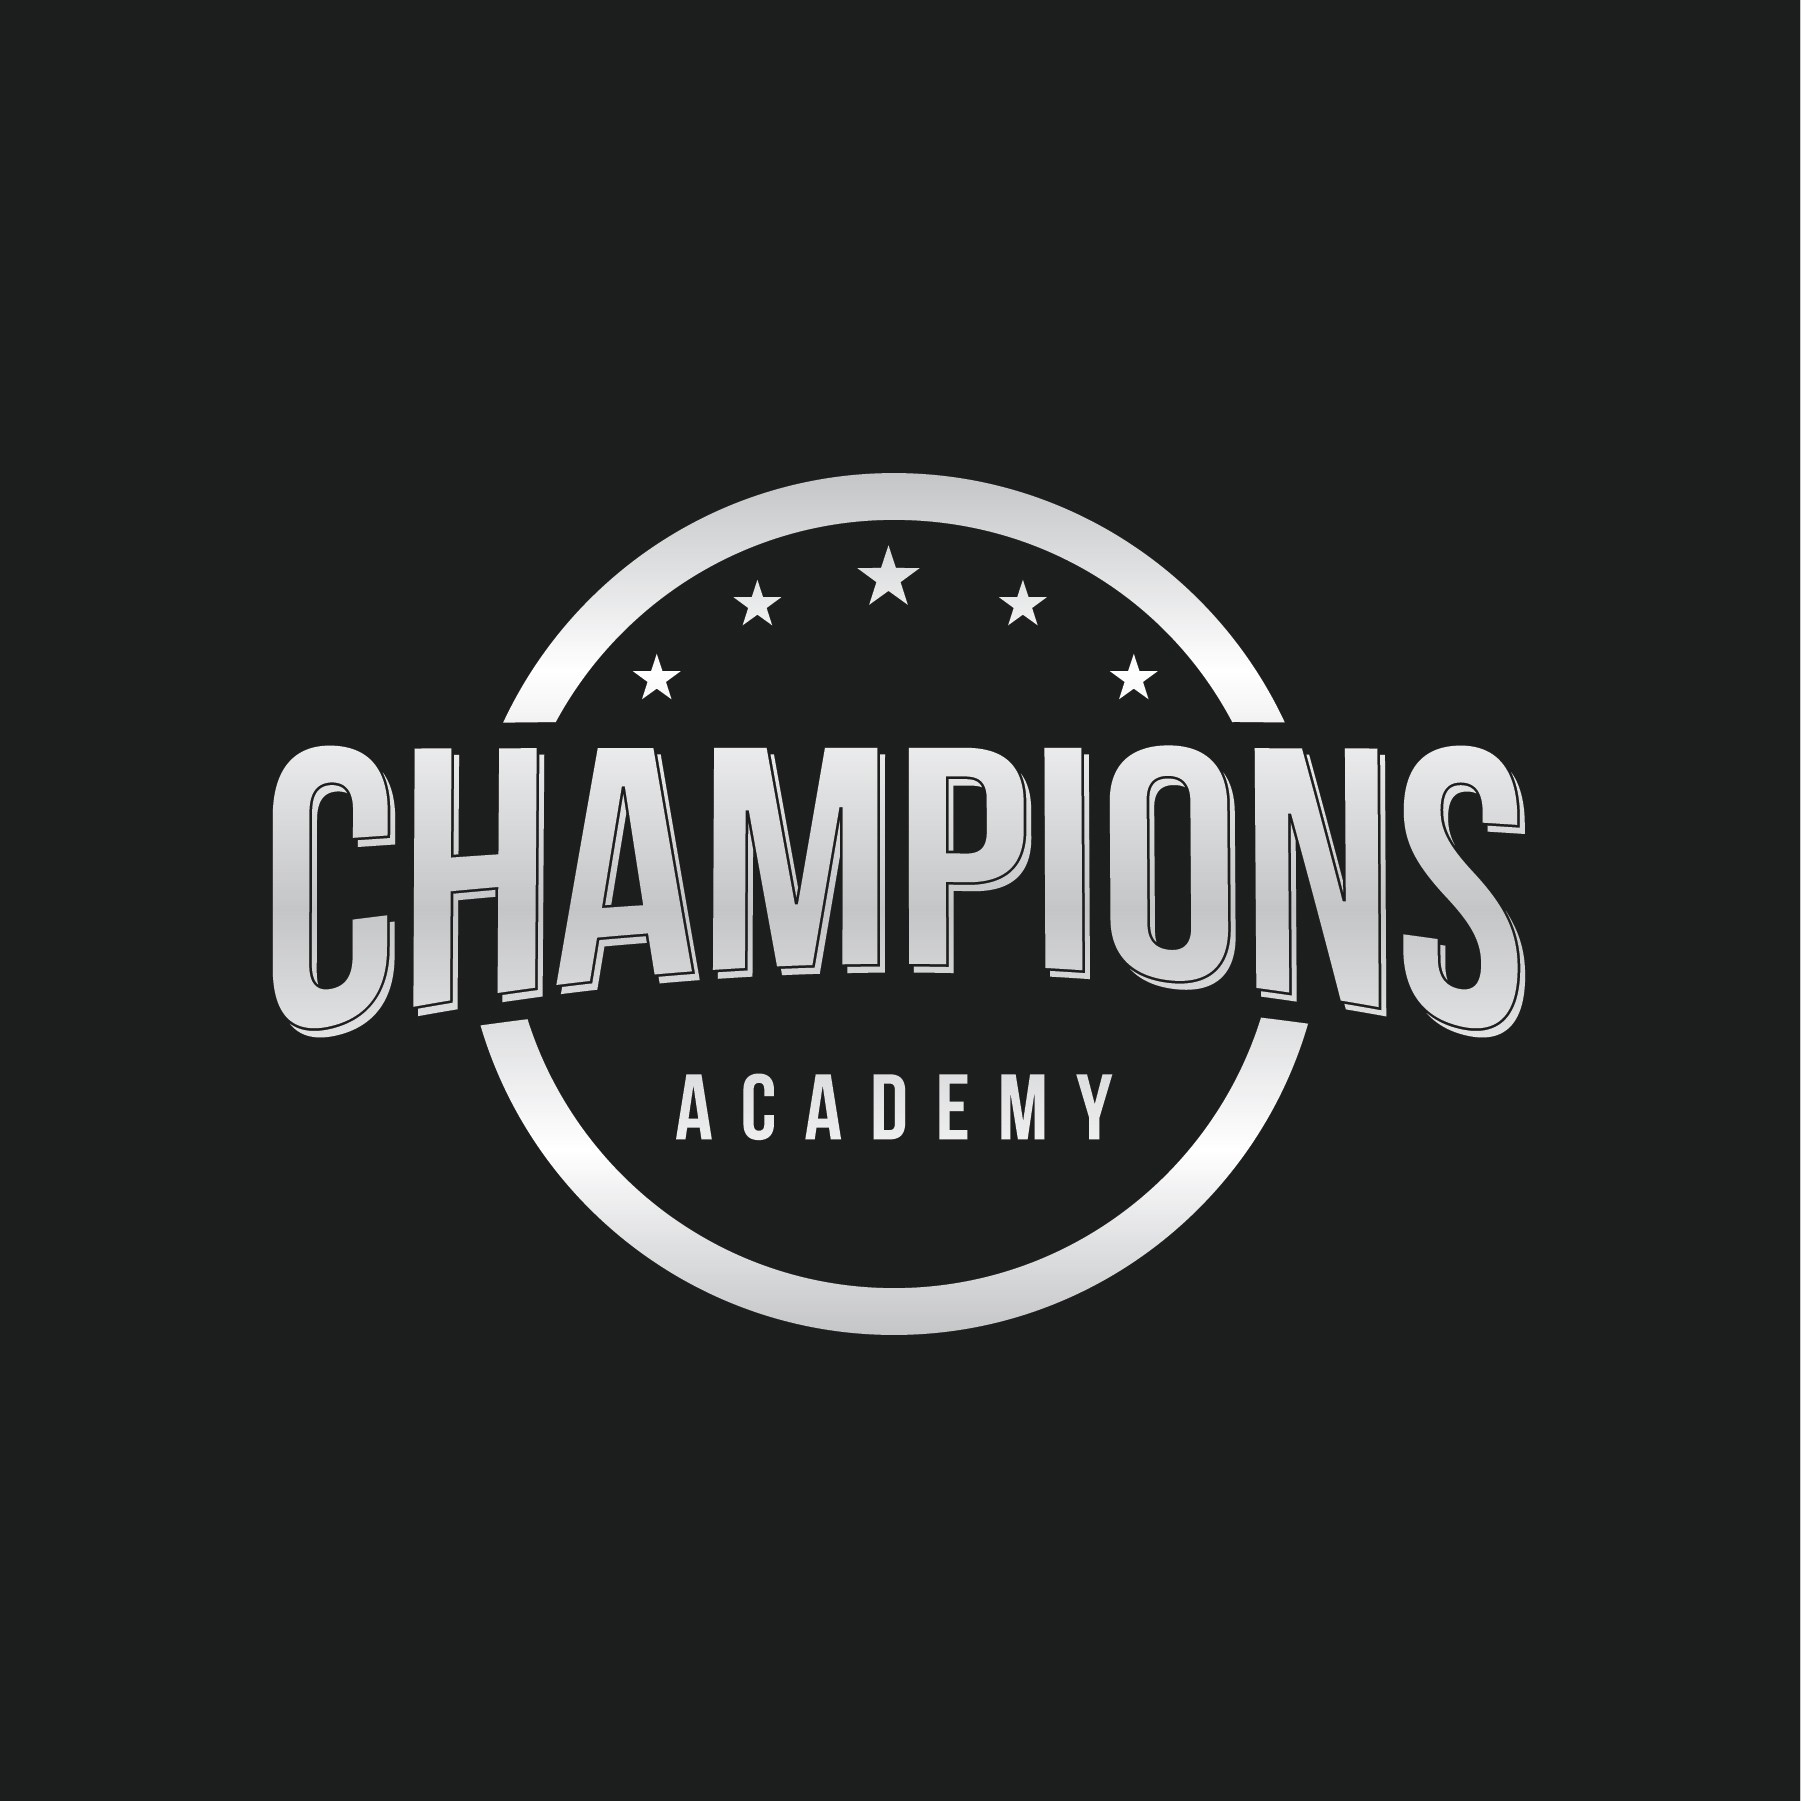 Champions Academy needs a powerful logo and design package.